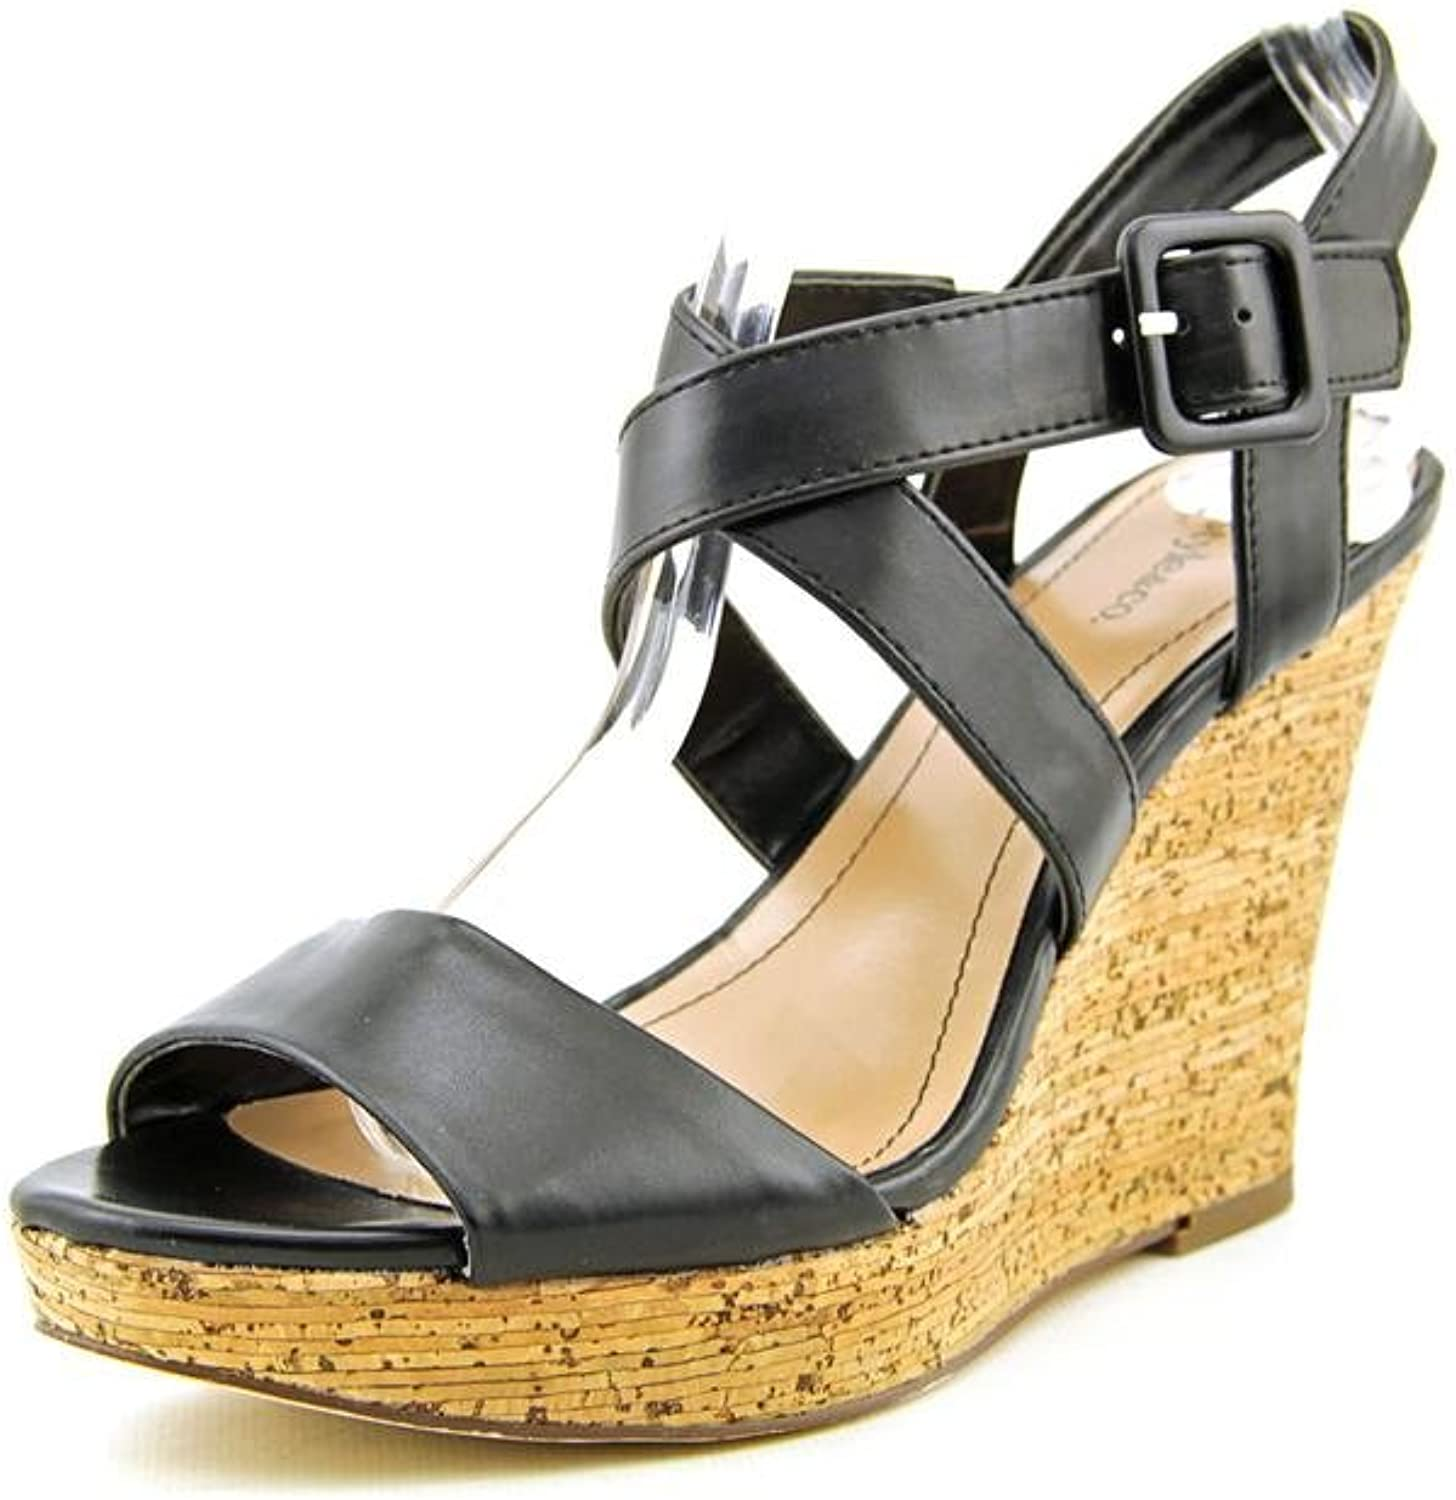 Style & Co.. Womens ALLEXUS Leather Open Toe Casual Platform, Black, Size 8.5